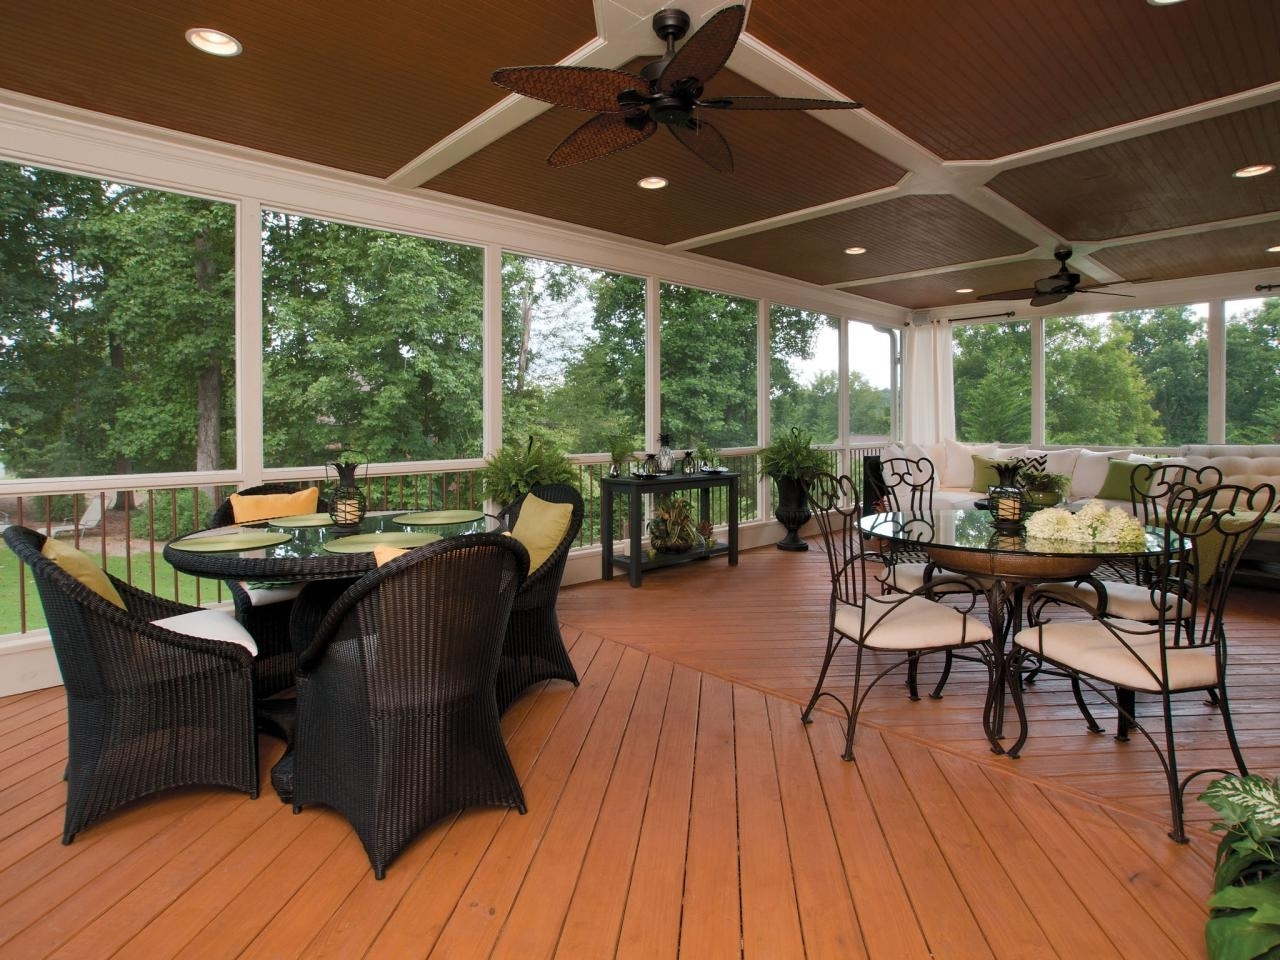 Famous Outdoor Porch Ceiling Fans With Lights With Regard To Front Porch Light With Camera Lights Music Ideas Outdoor Not Working (View 12 of 20)